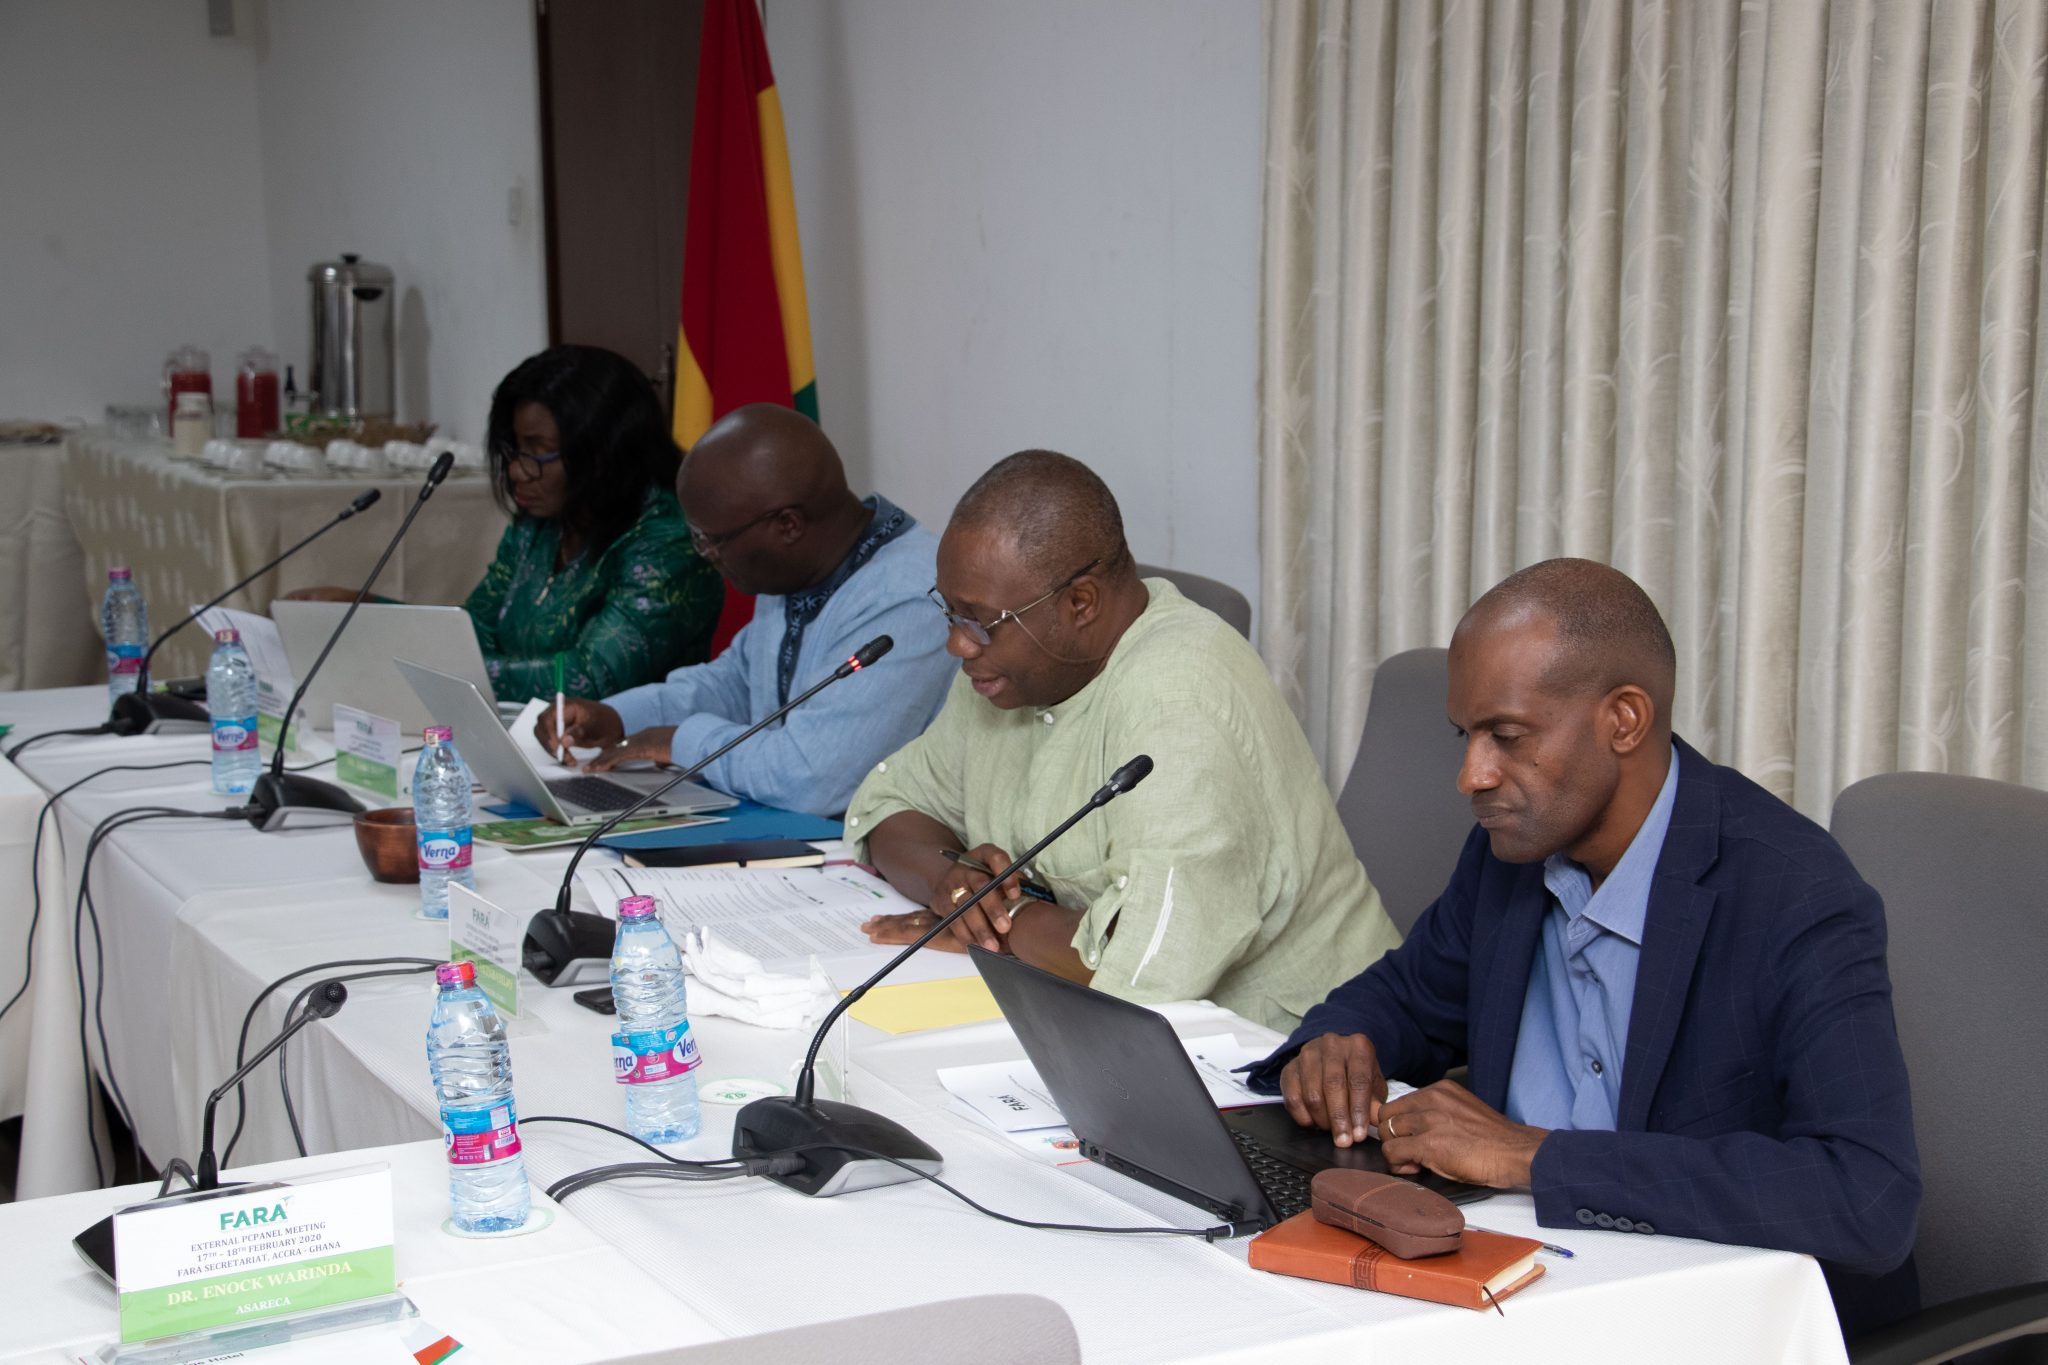 CAADP XP4 Programme Coordination Panel (PC Panel) for Agricultural Research in Africa Underway in Accra